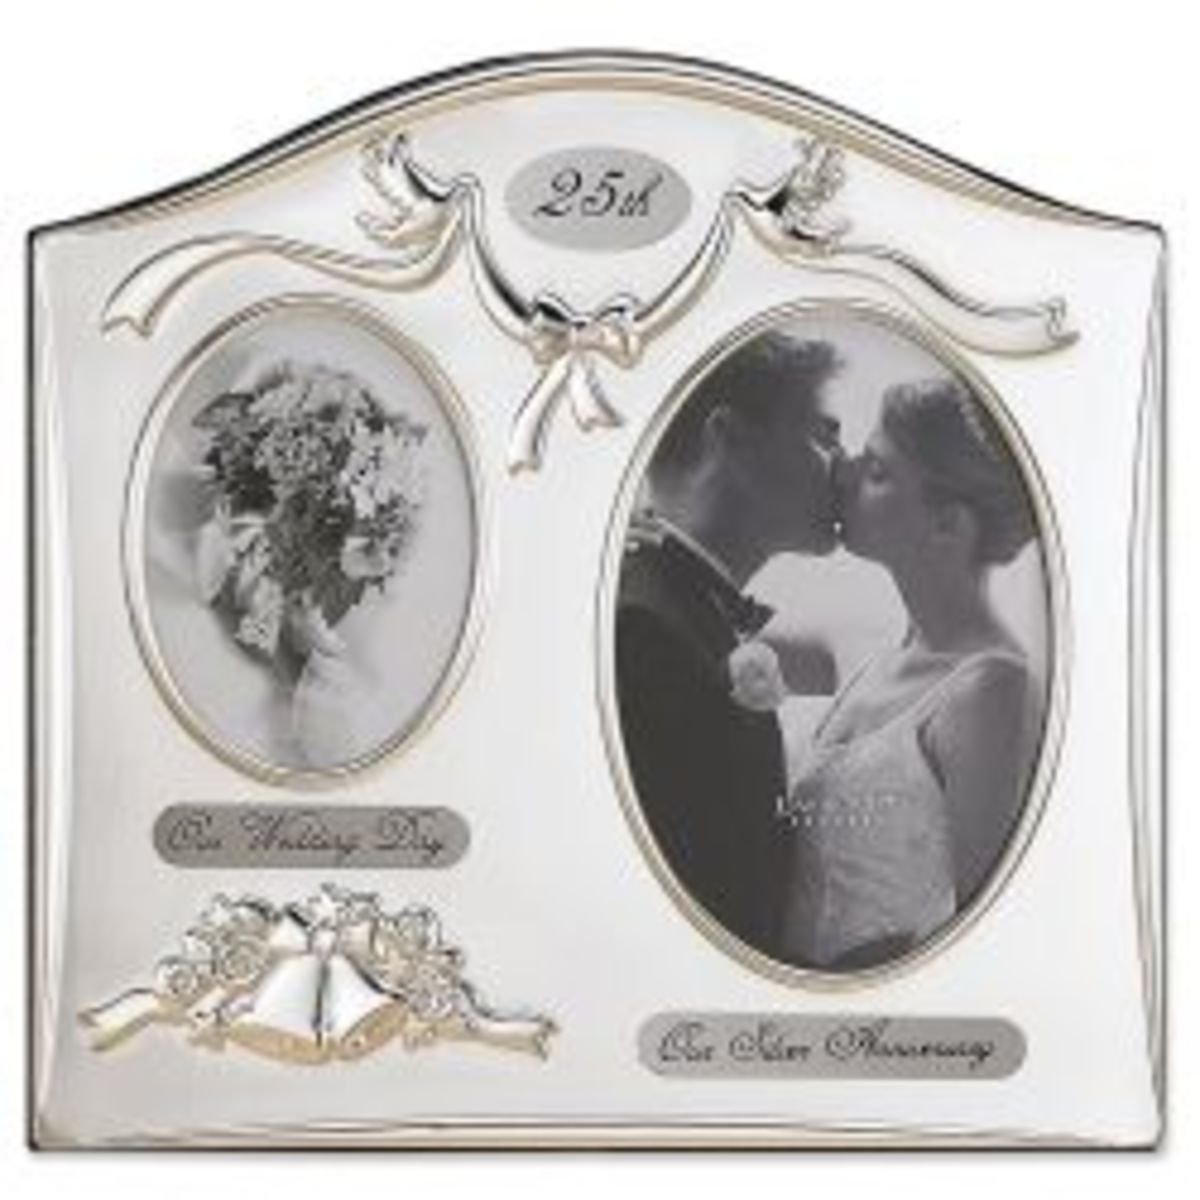 25th Anniversary Design Picture Frame